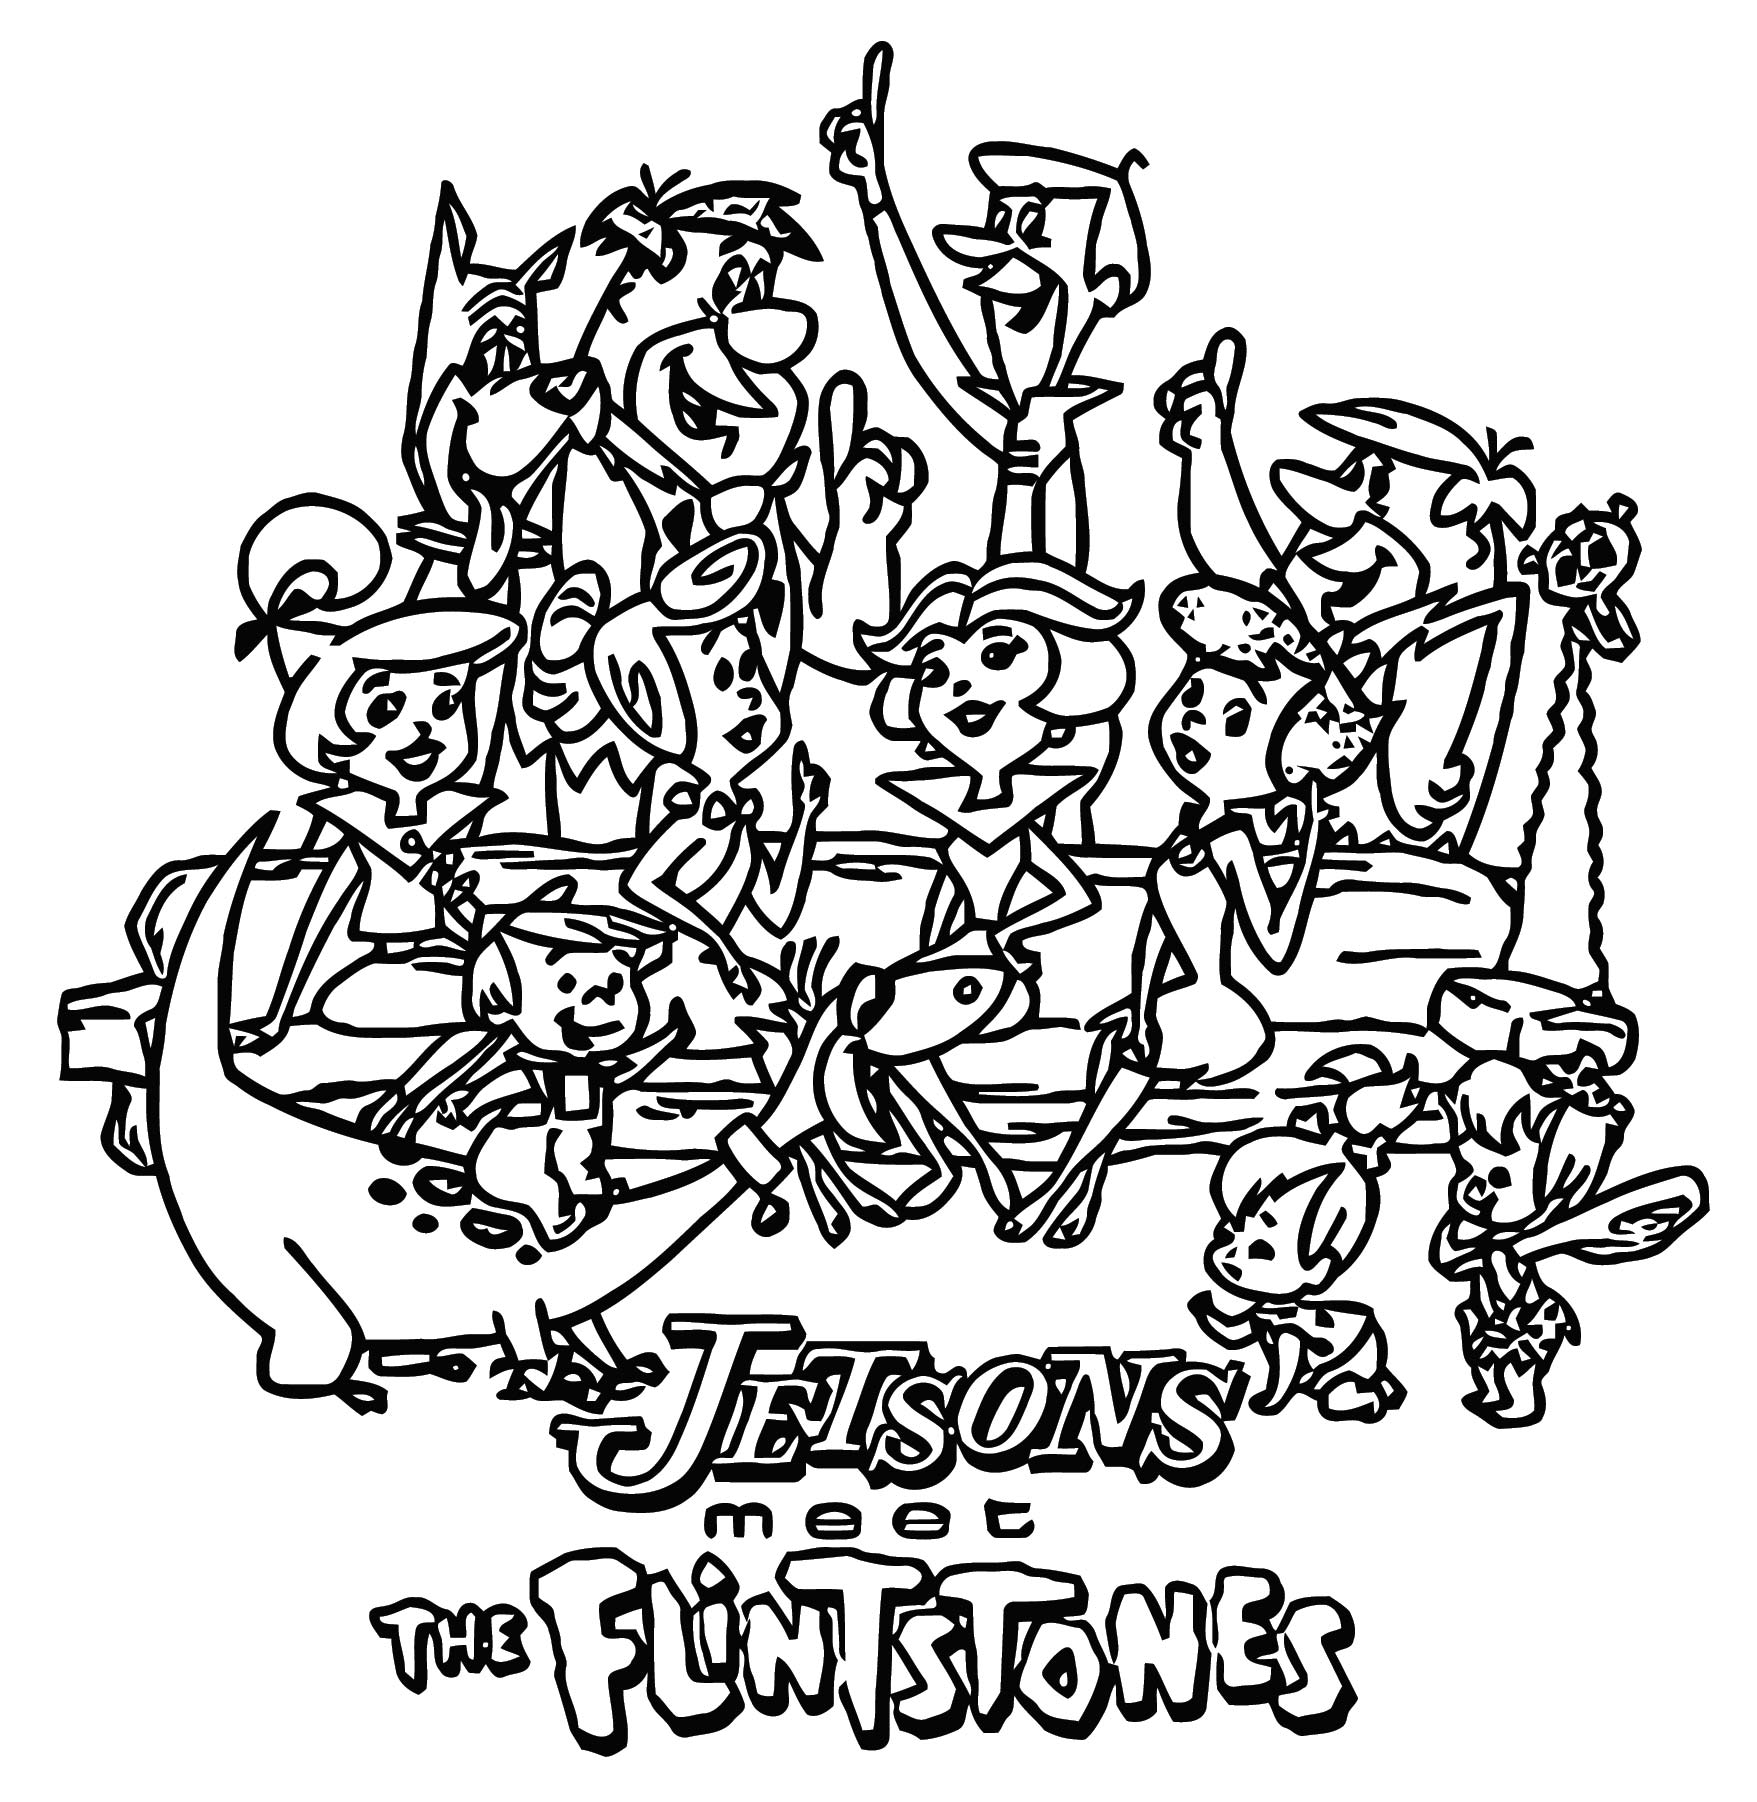 The Jetsons Meet The Flintstones Coloring Page